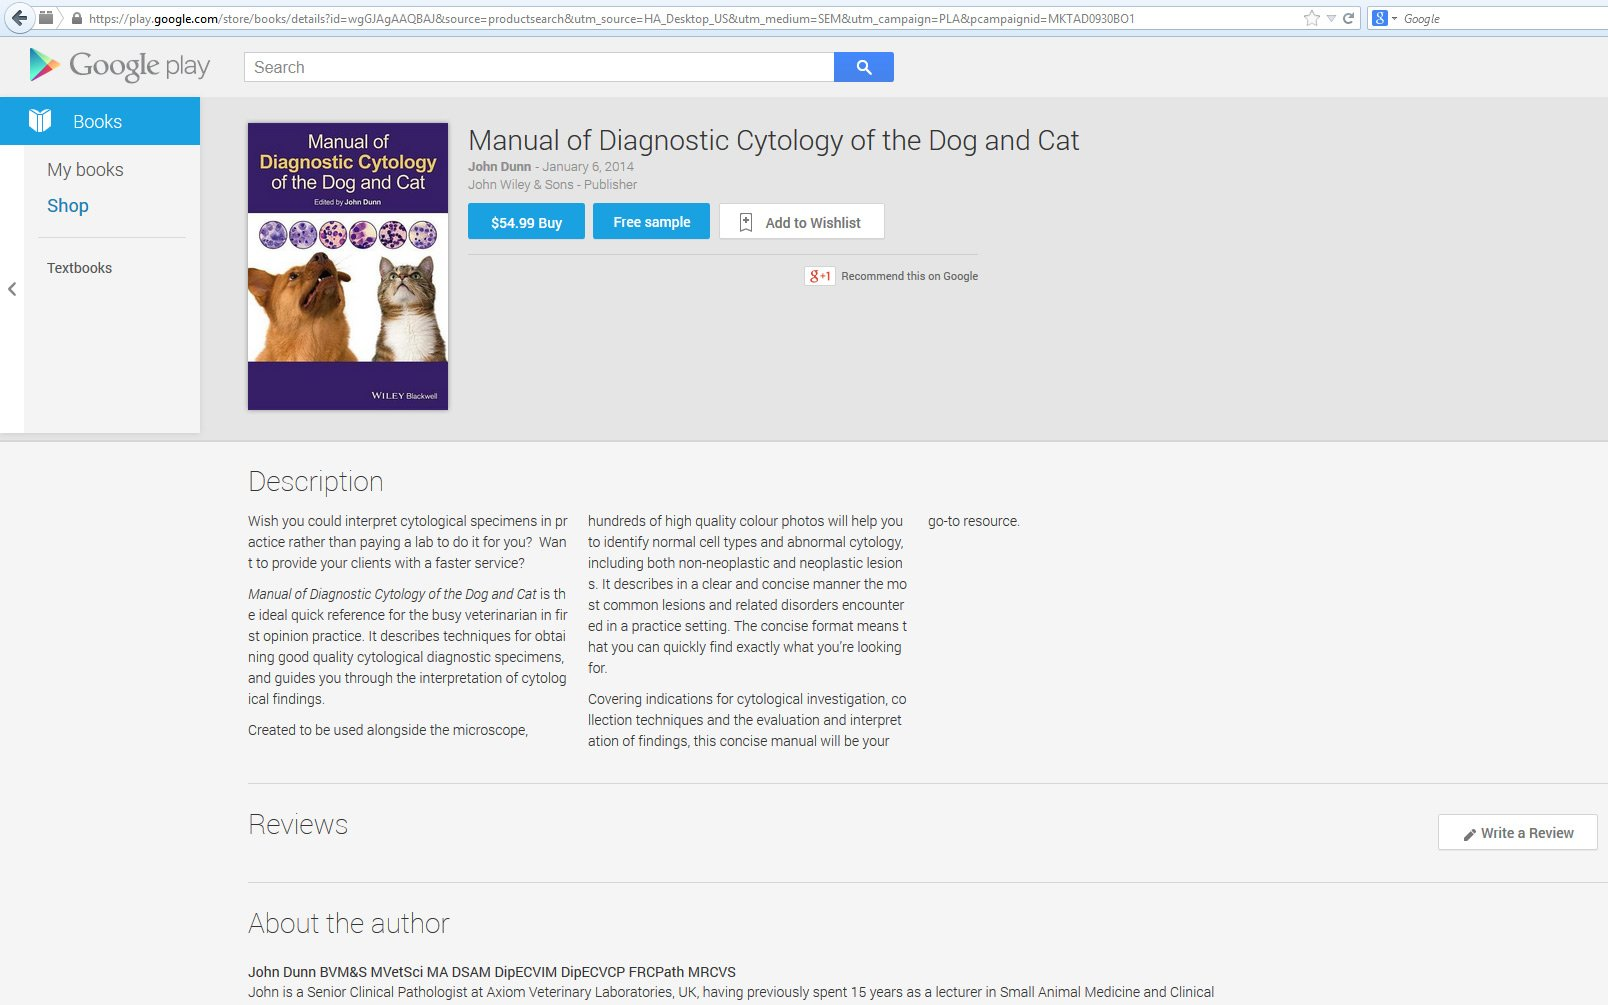 Manual-of-Diagnostic-cytology-of-the-dog-and-cat.jpg